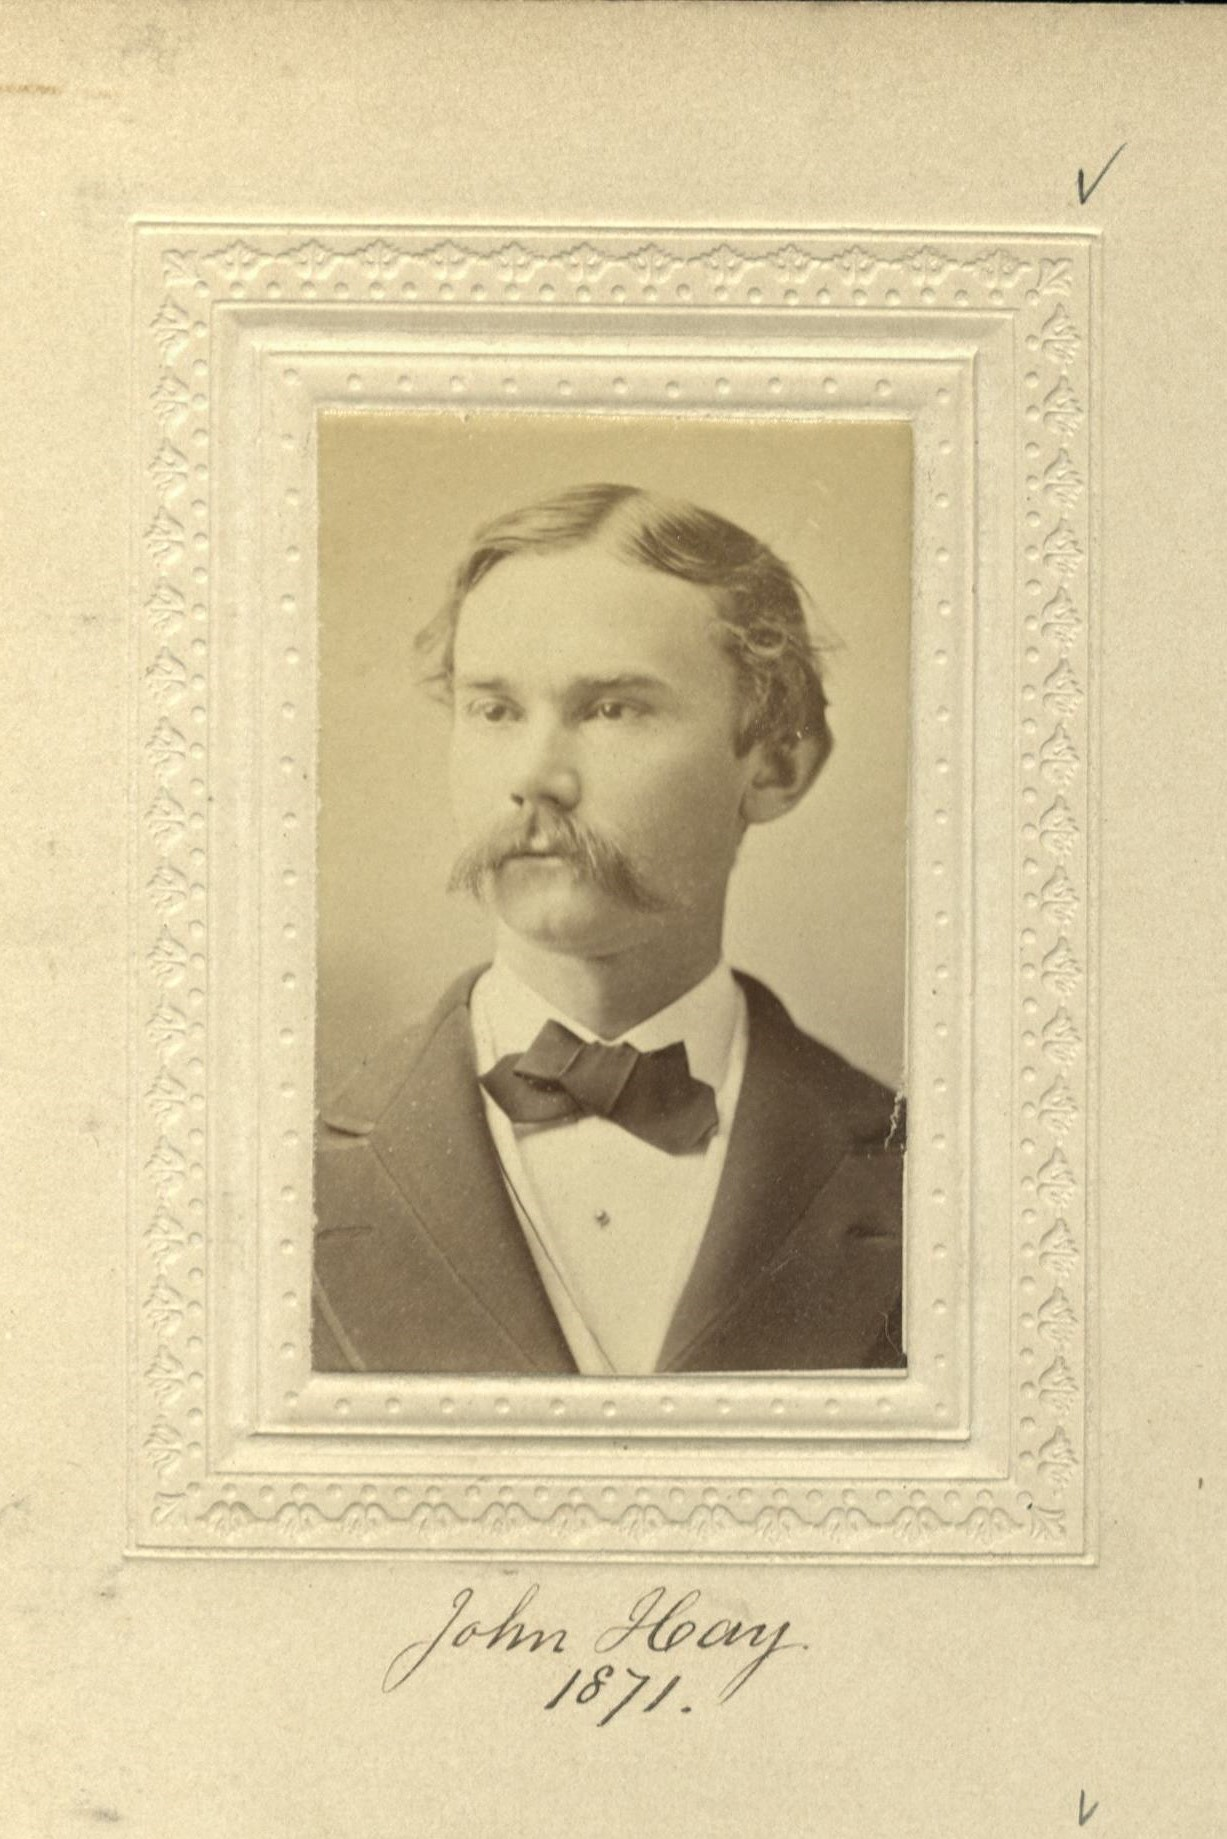 Member portrait of John Hay